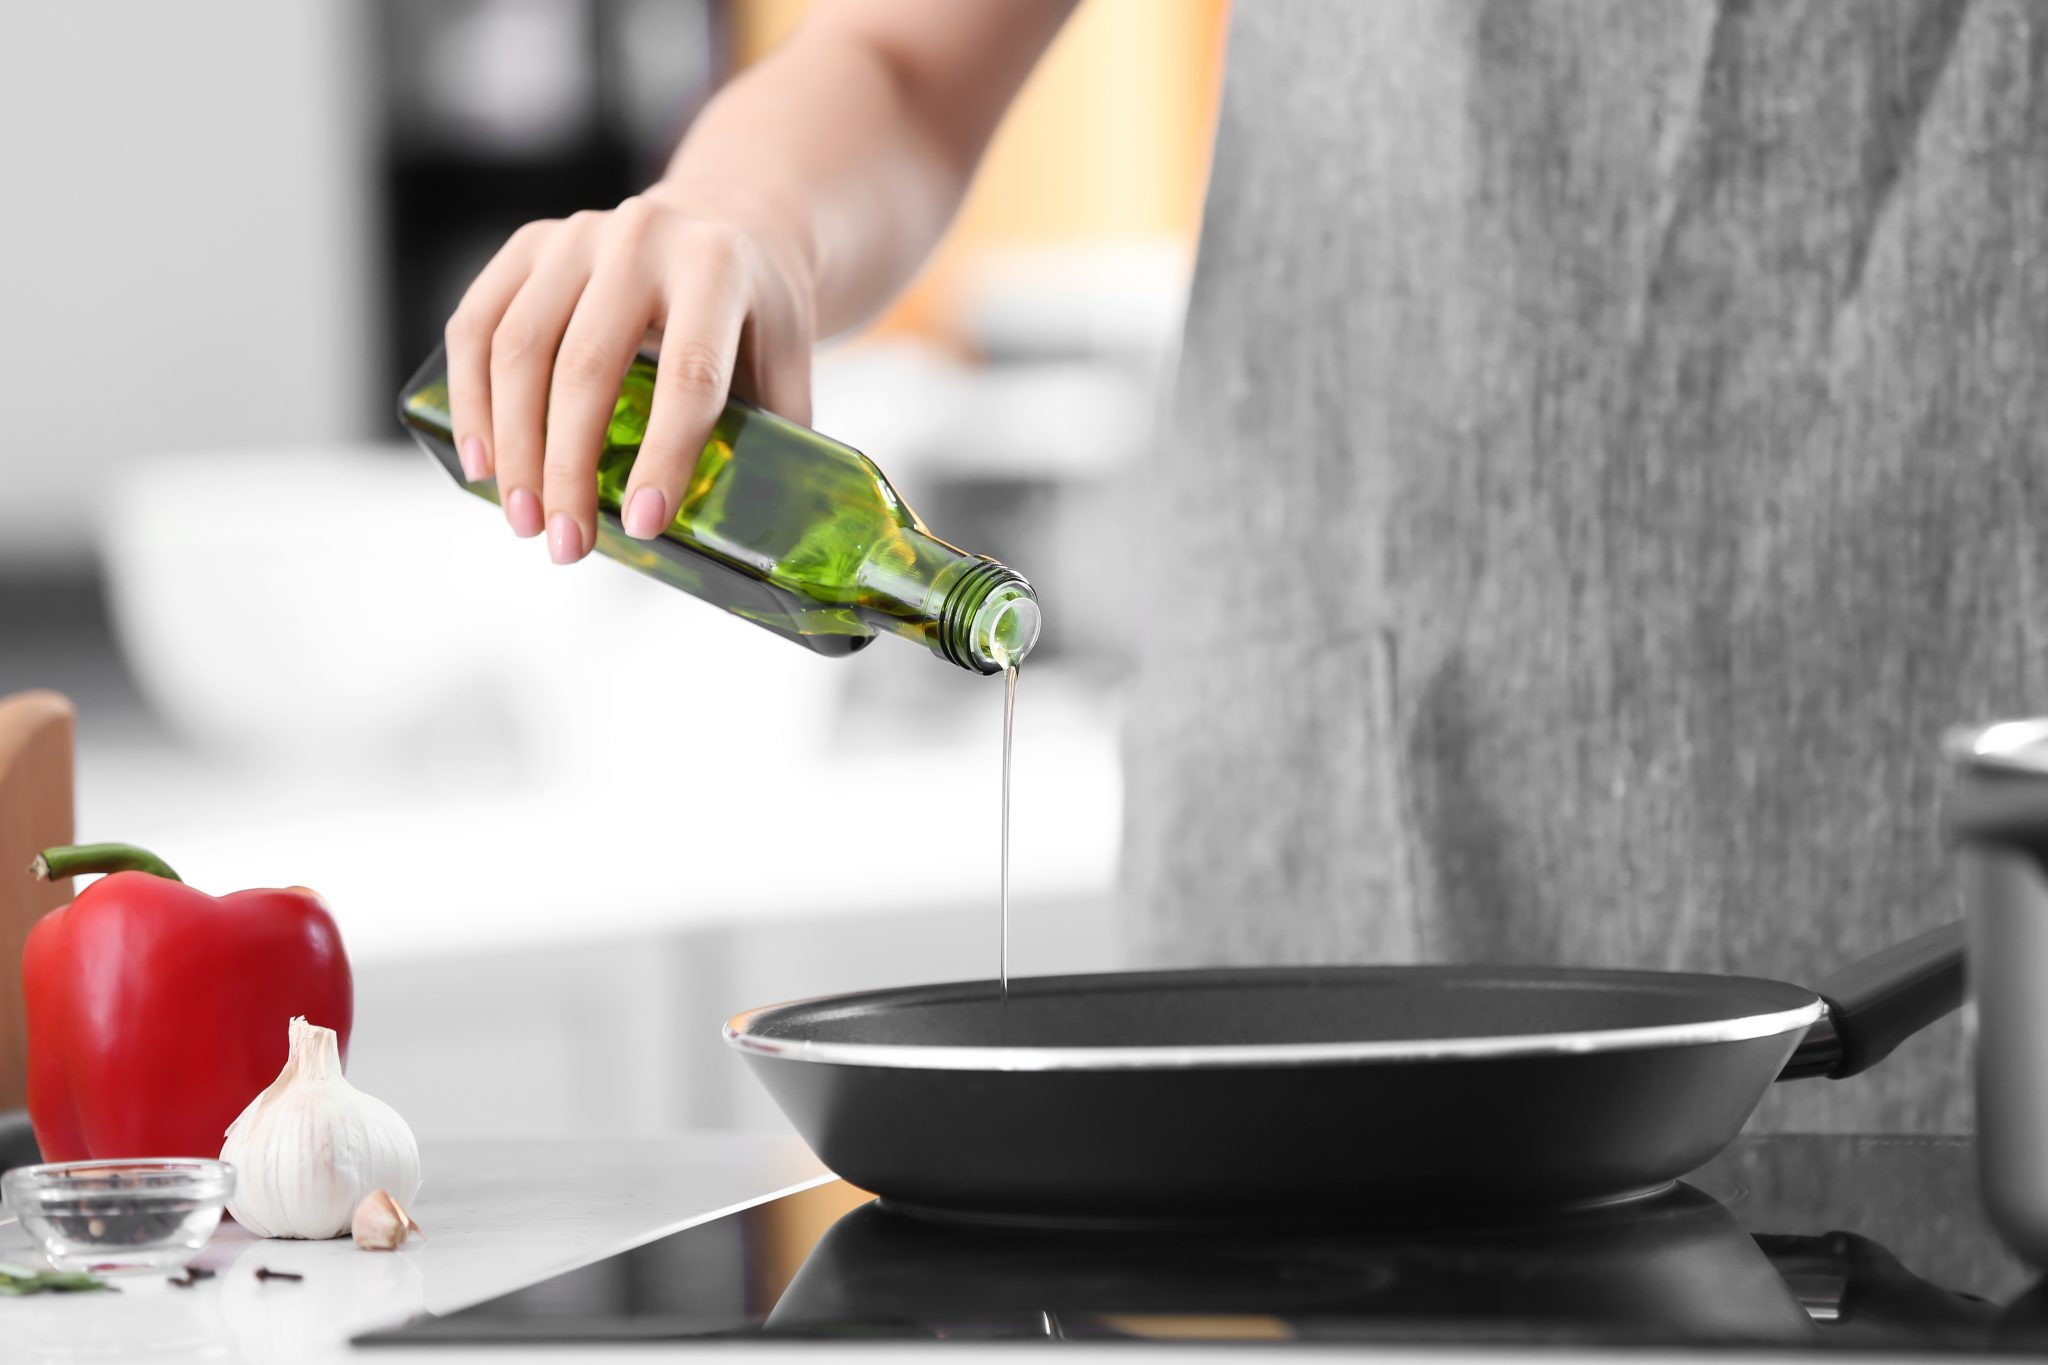 Busting The Myth That Cooking In Olive Oil Will Ruin Your Pans